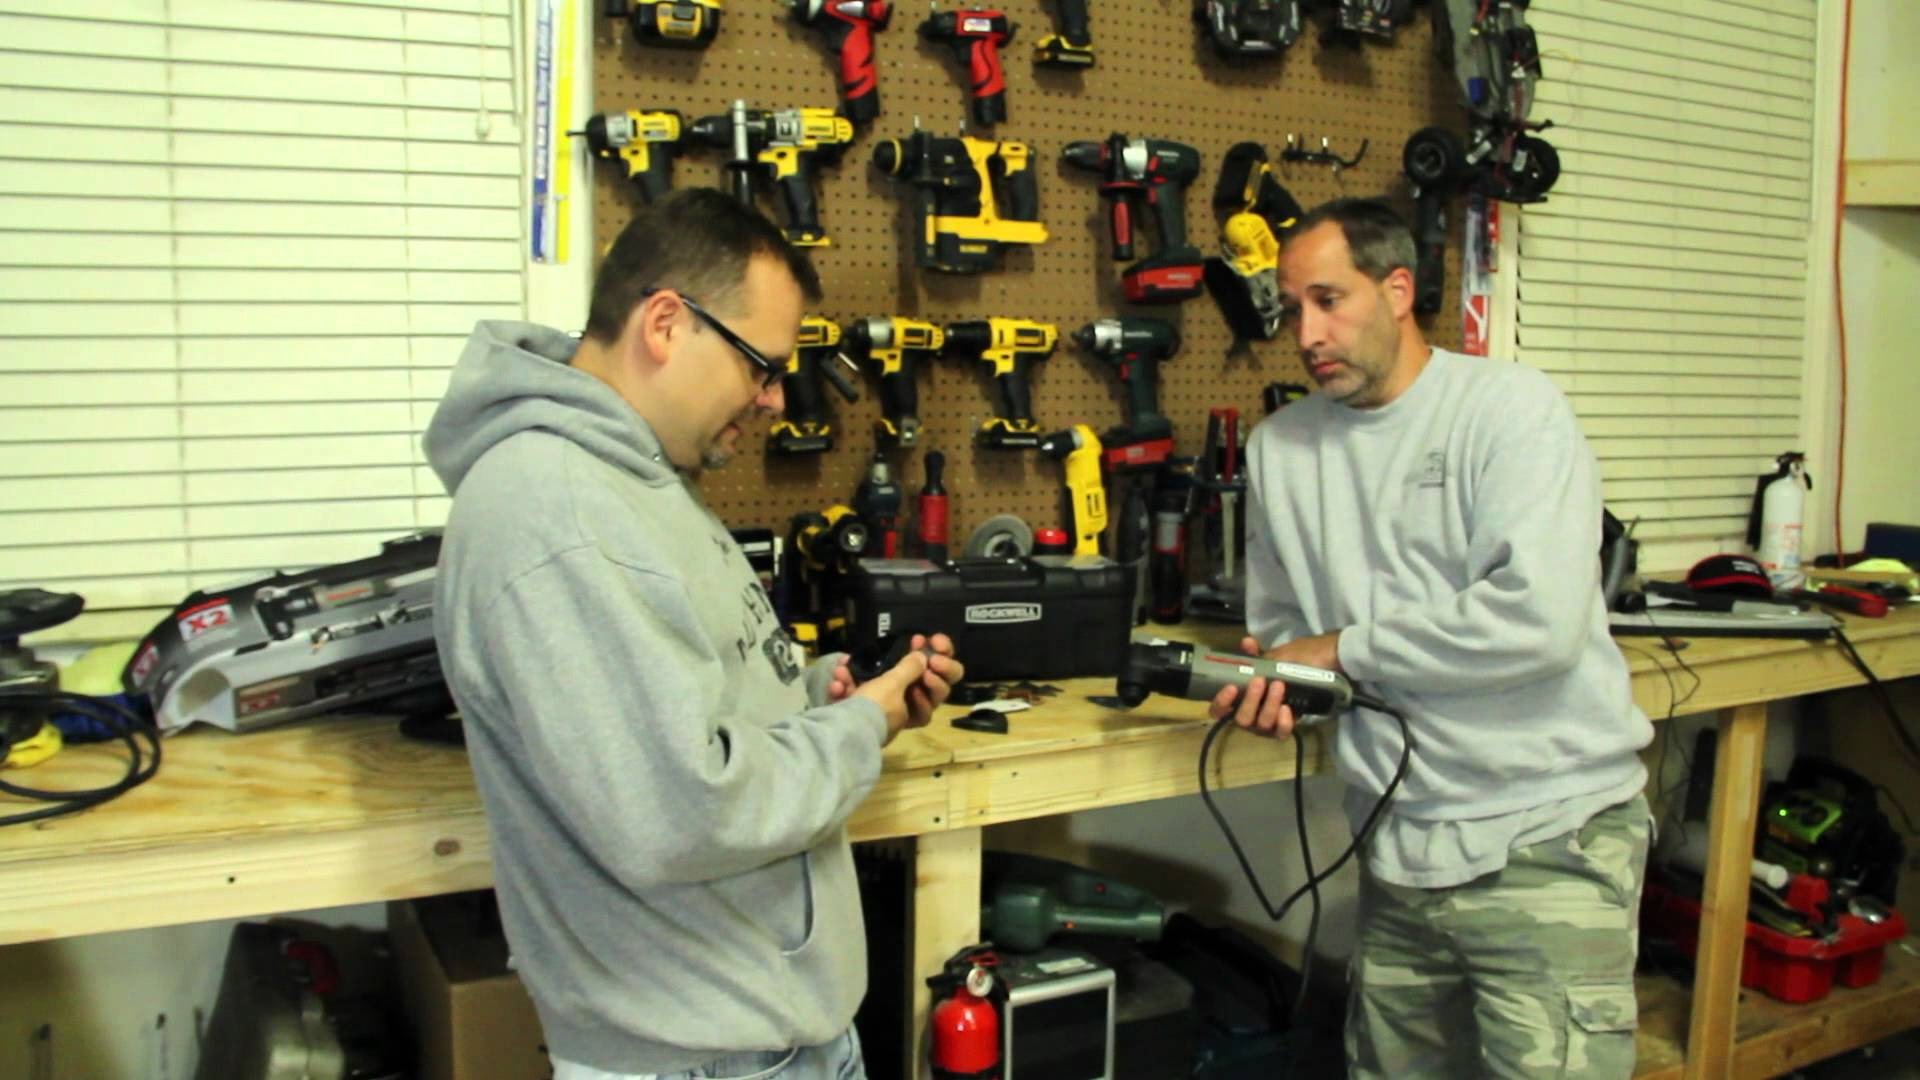 What To Look For When Purchasing An Oscillating Tool